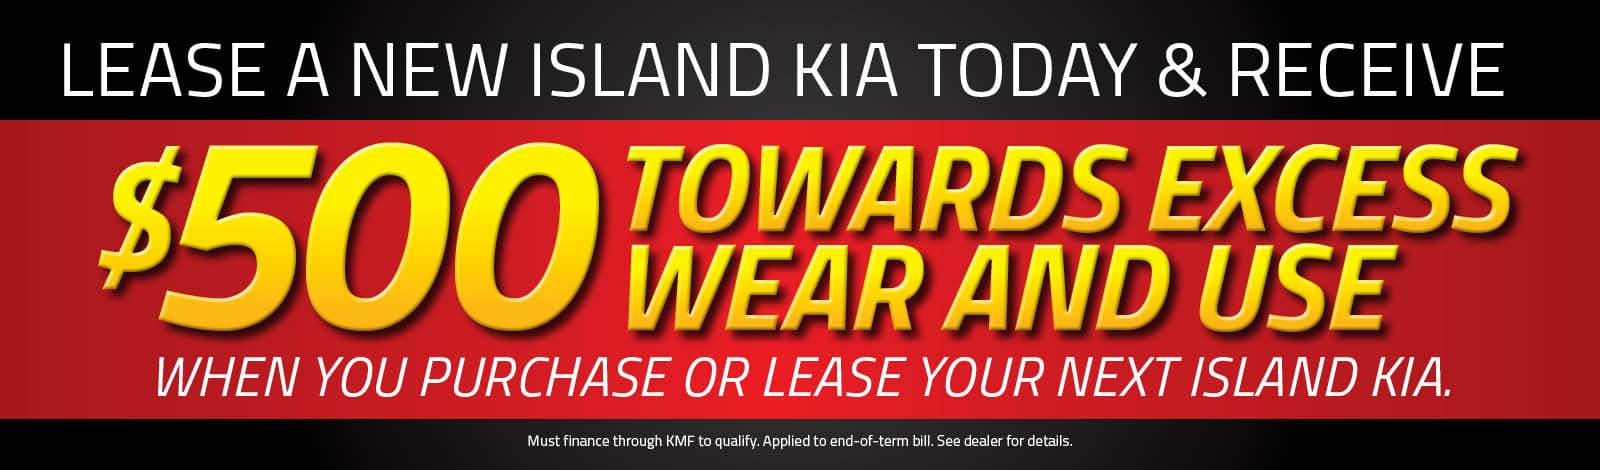 Staten Island Kia Dealership New Certified Preowned Cars Near